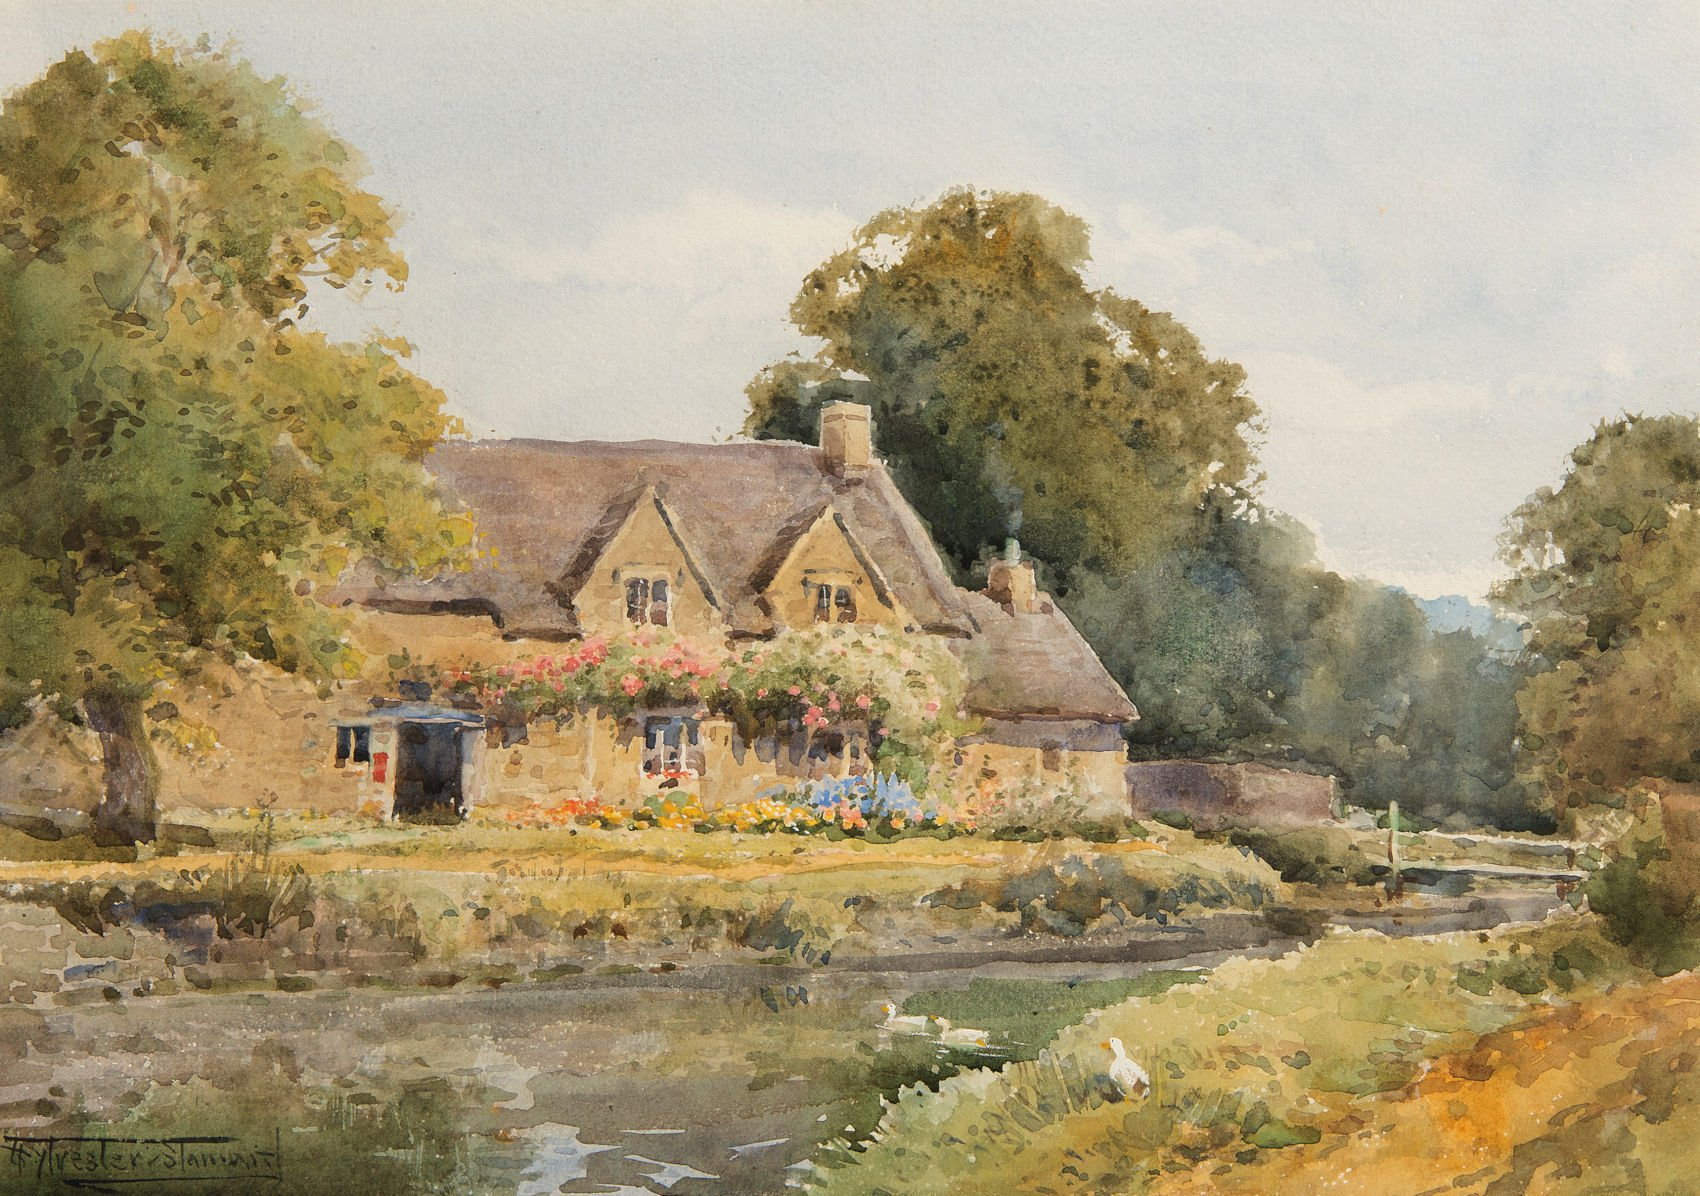 4602 - Henry Stannard - Lower Slaughter Post Office, Gloucestershire - Unframed